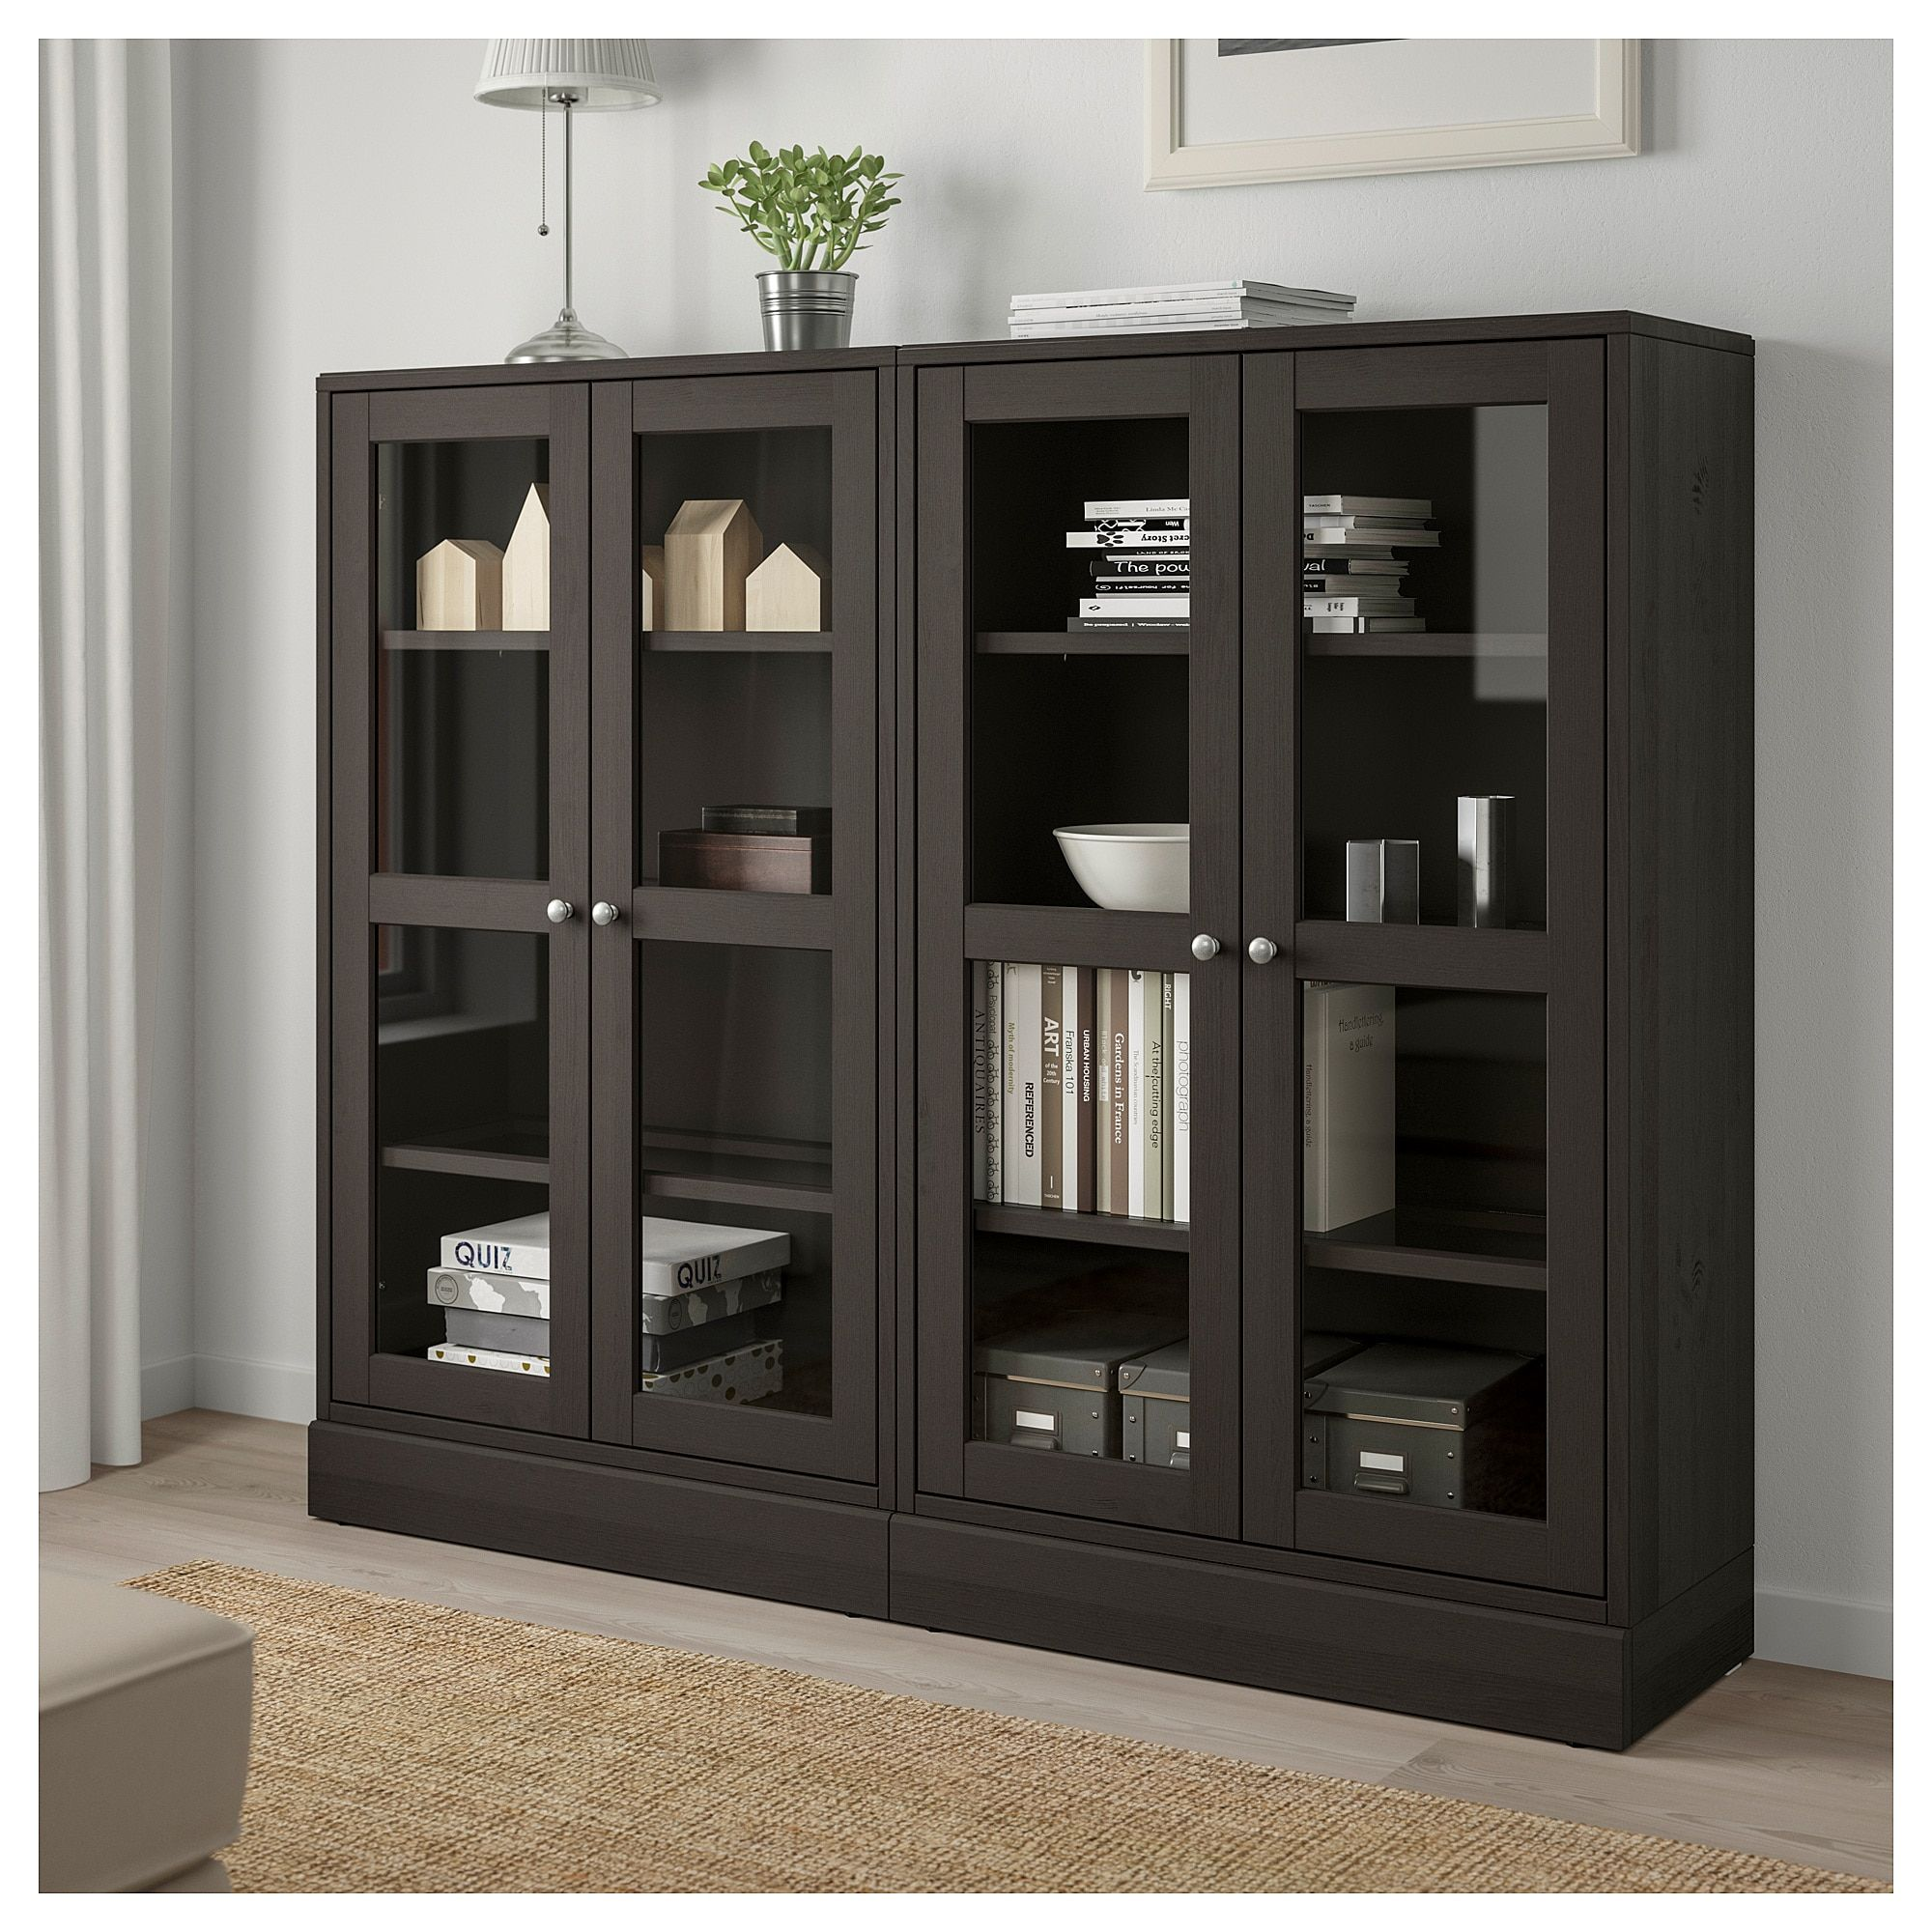 Ikea Storage Cabinets Ikea Havsta Storage Combination W Glass Doors Dark Brown In 2019